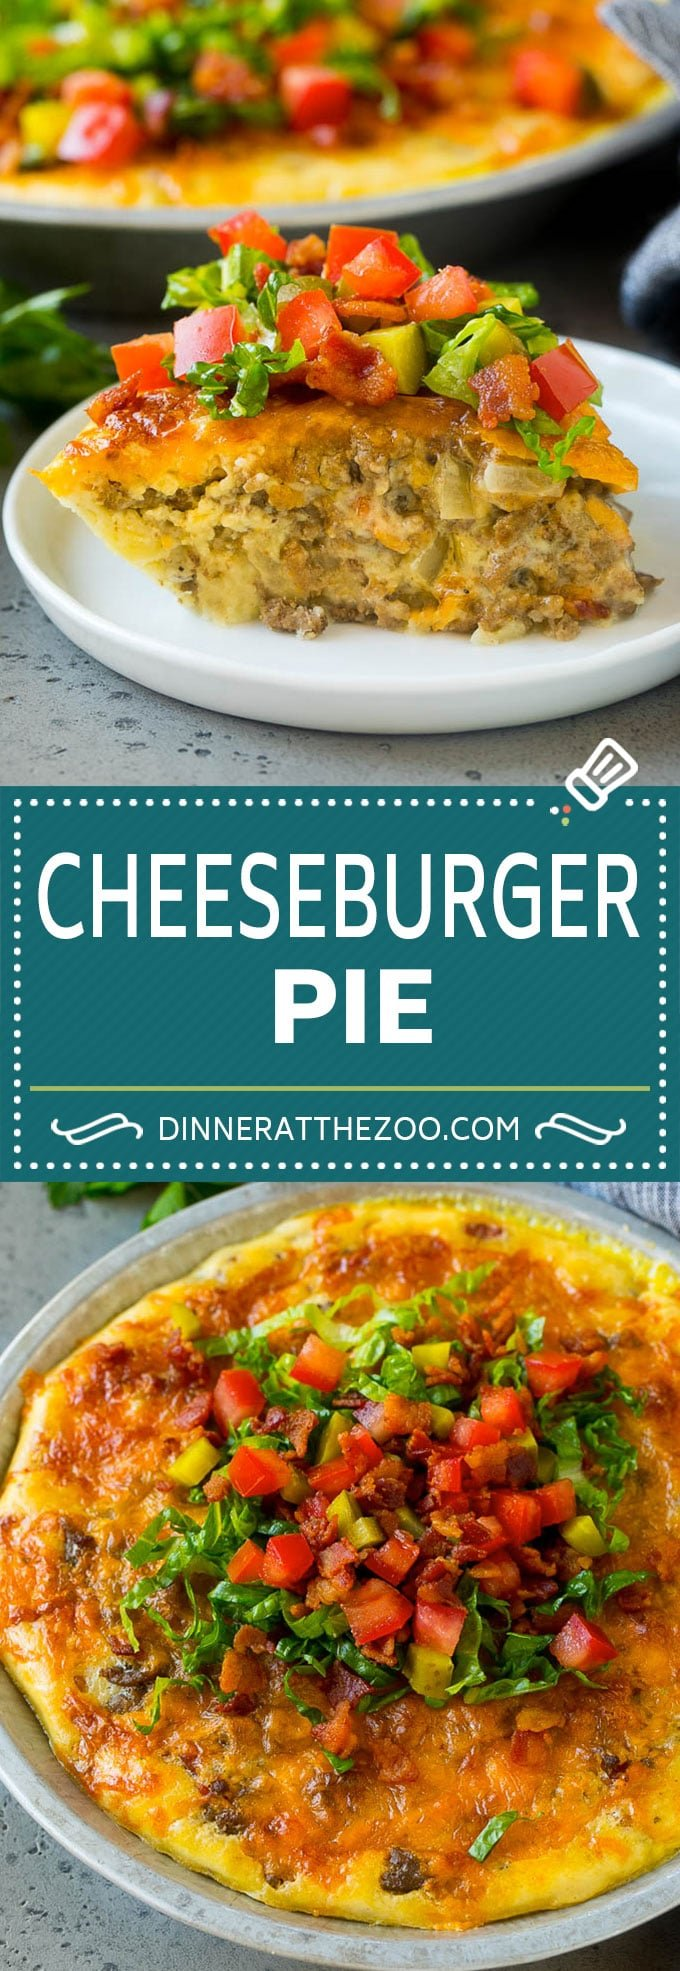 Cheeseburger Pie Recipe | Cheeseburger Casserole | Ground Beef Recipe #cheeseburger #beef #bacon #cheese #casserole #dinner #dinneratthezoo